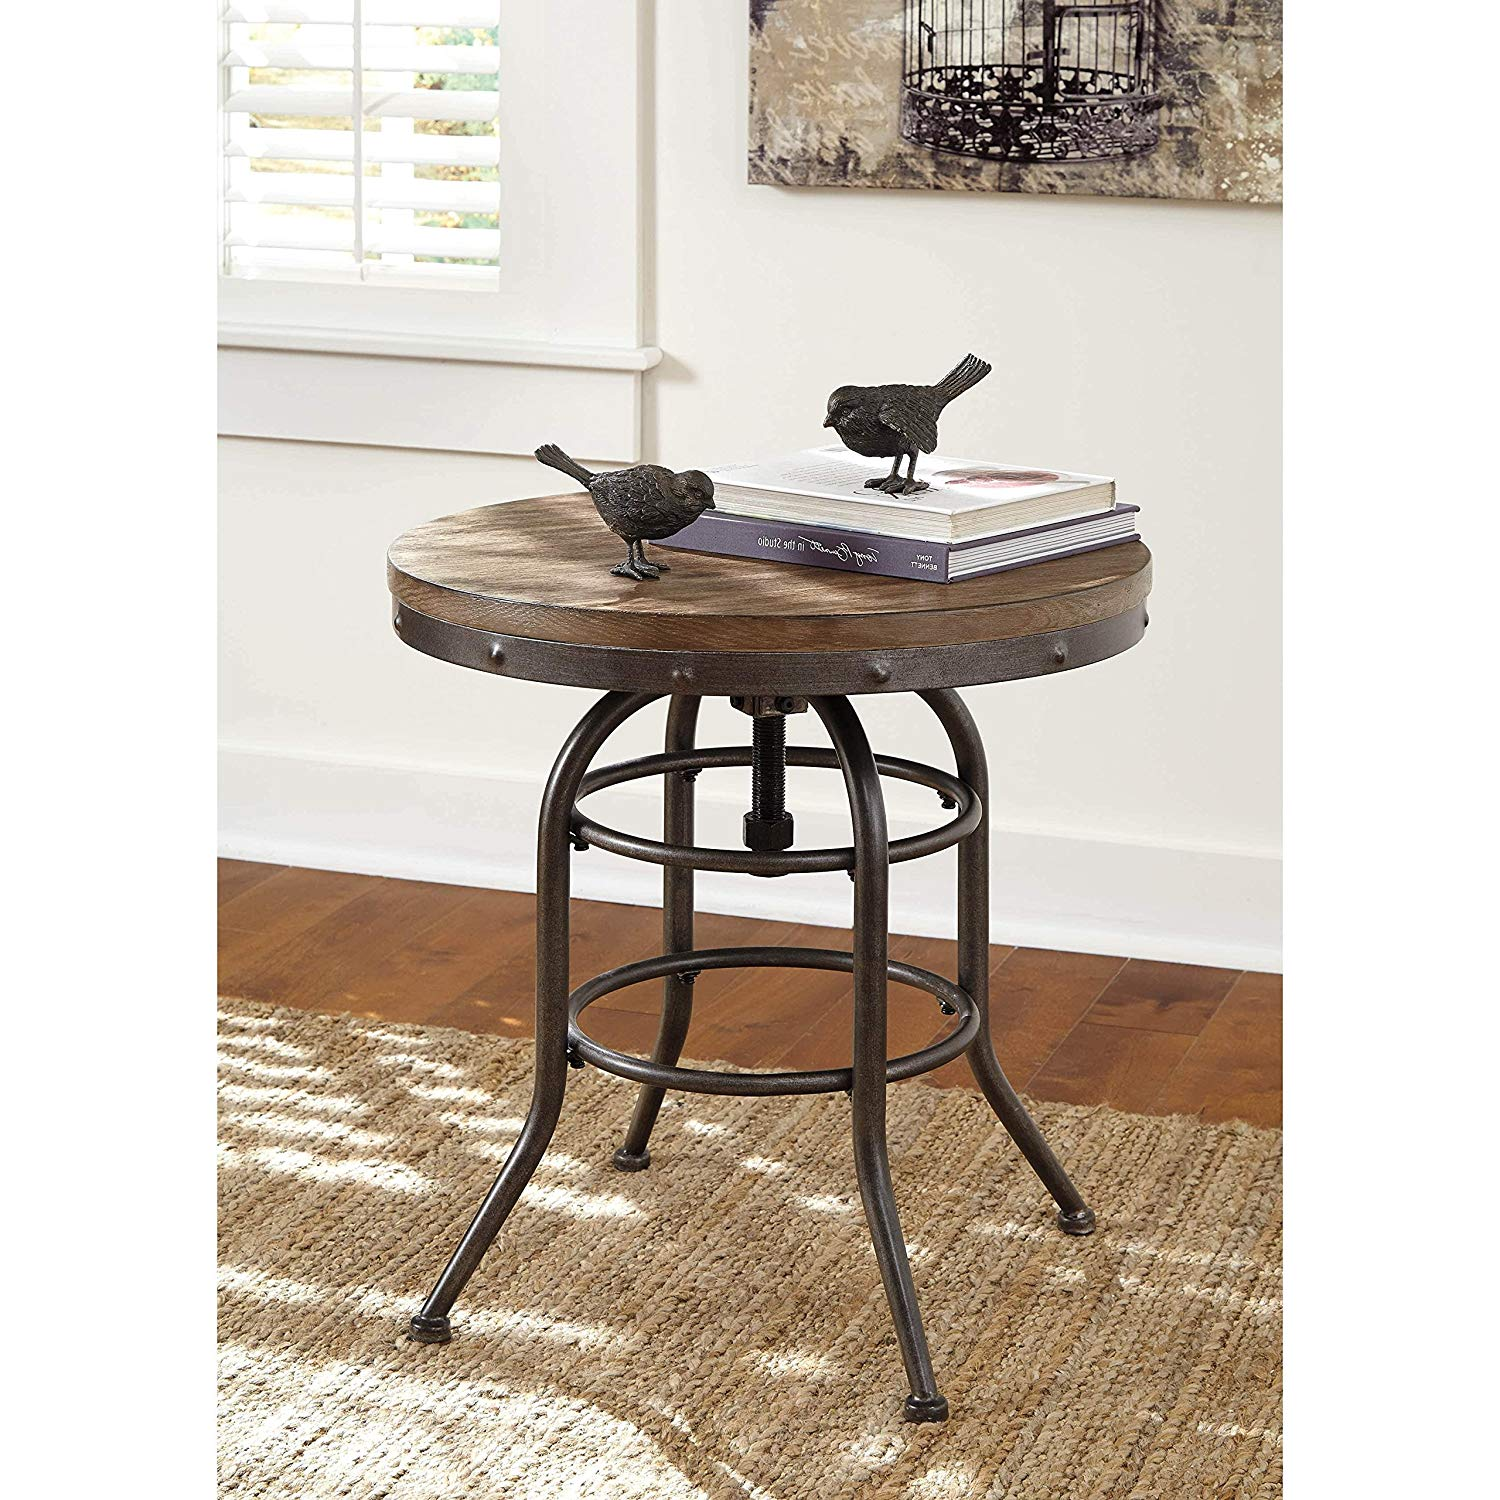 round end table with storage area side decor coffee grey cocktail furniture top kitchen dining homesense boxing day dinner sets stylish pet crates hallway thin ashley corner